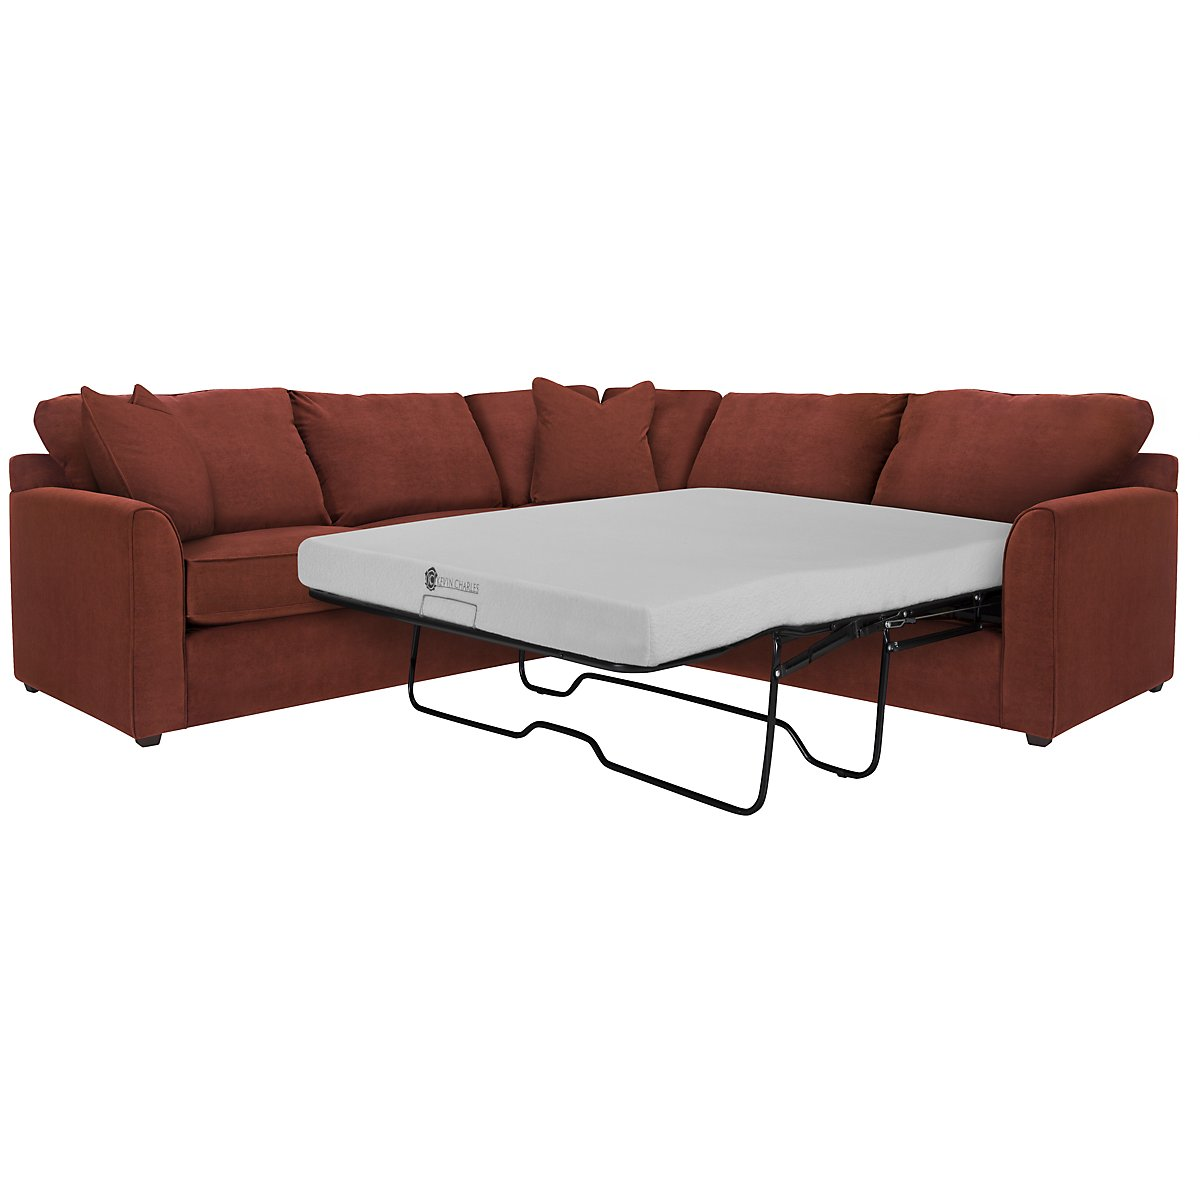 Express3 Red Microfiber Two-Arm Right Memory Foam Sleeper Sectional